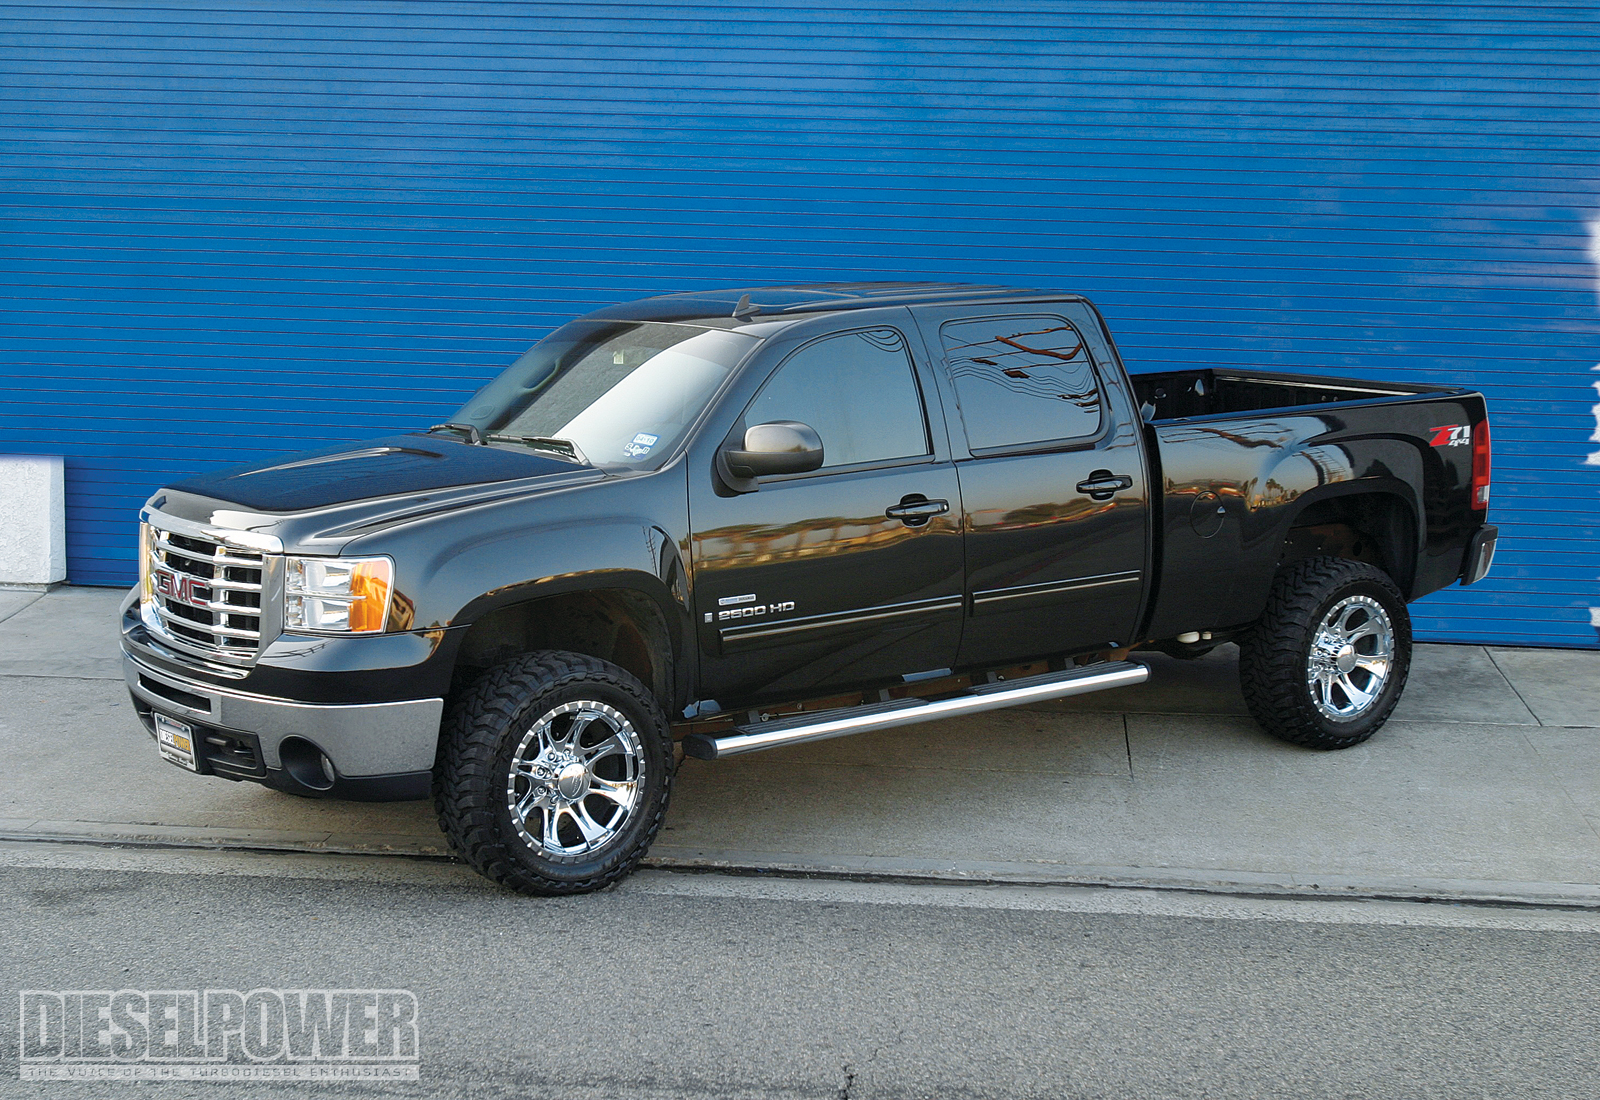 2009 Gmc Sierra 2500hd #5